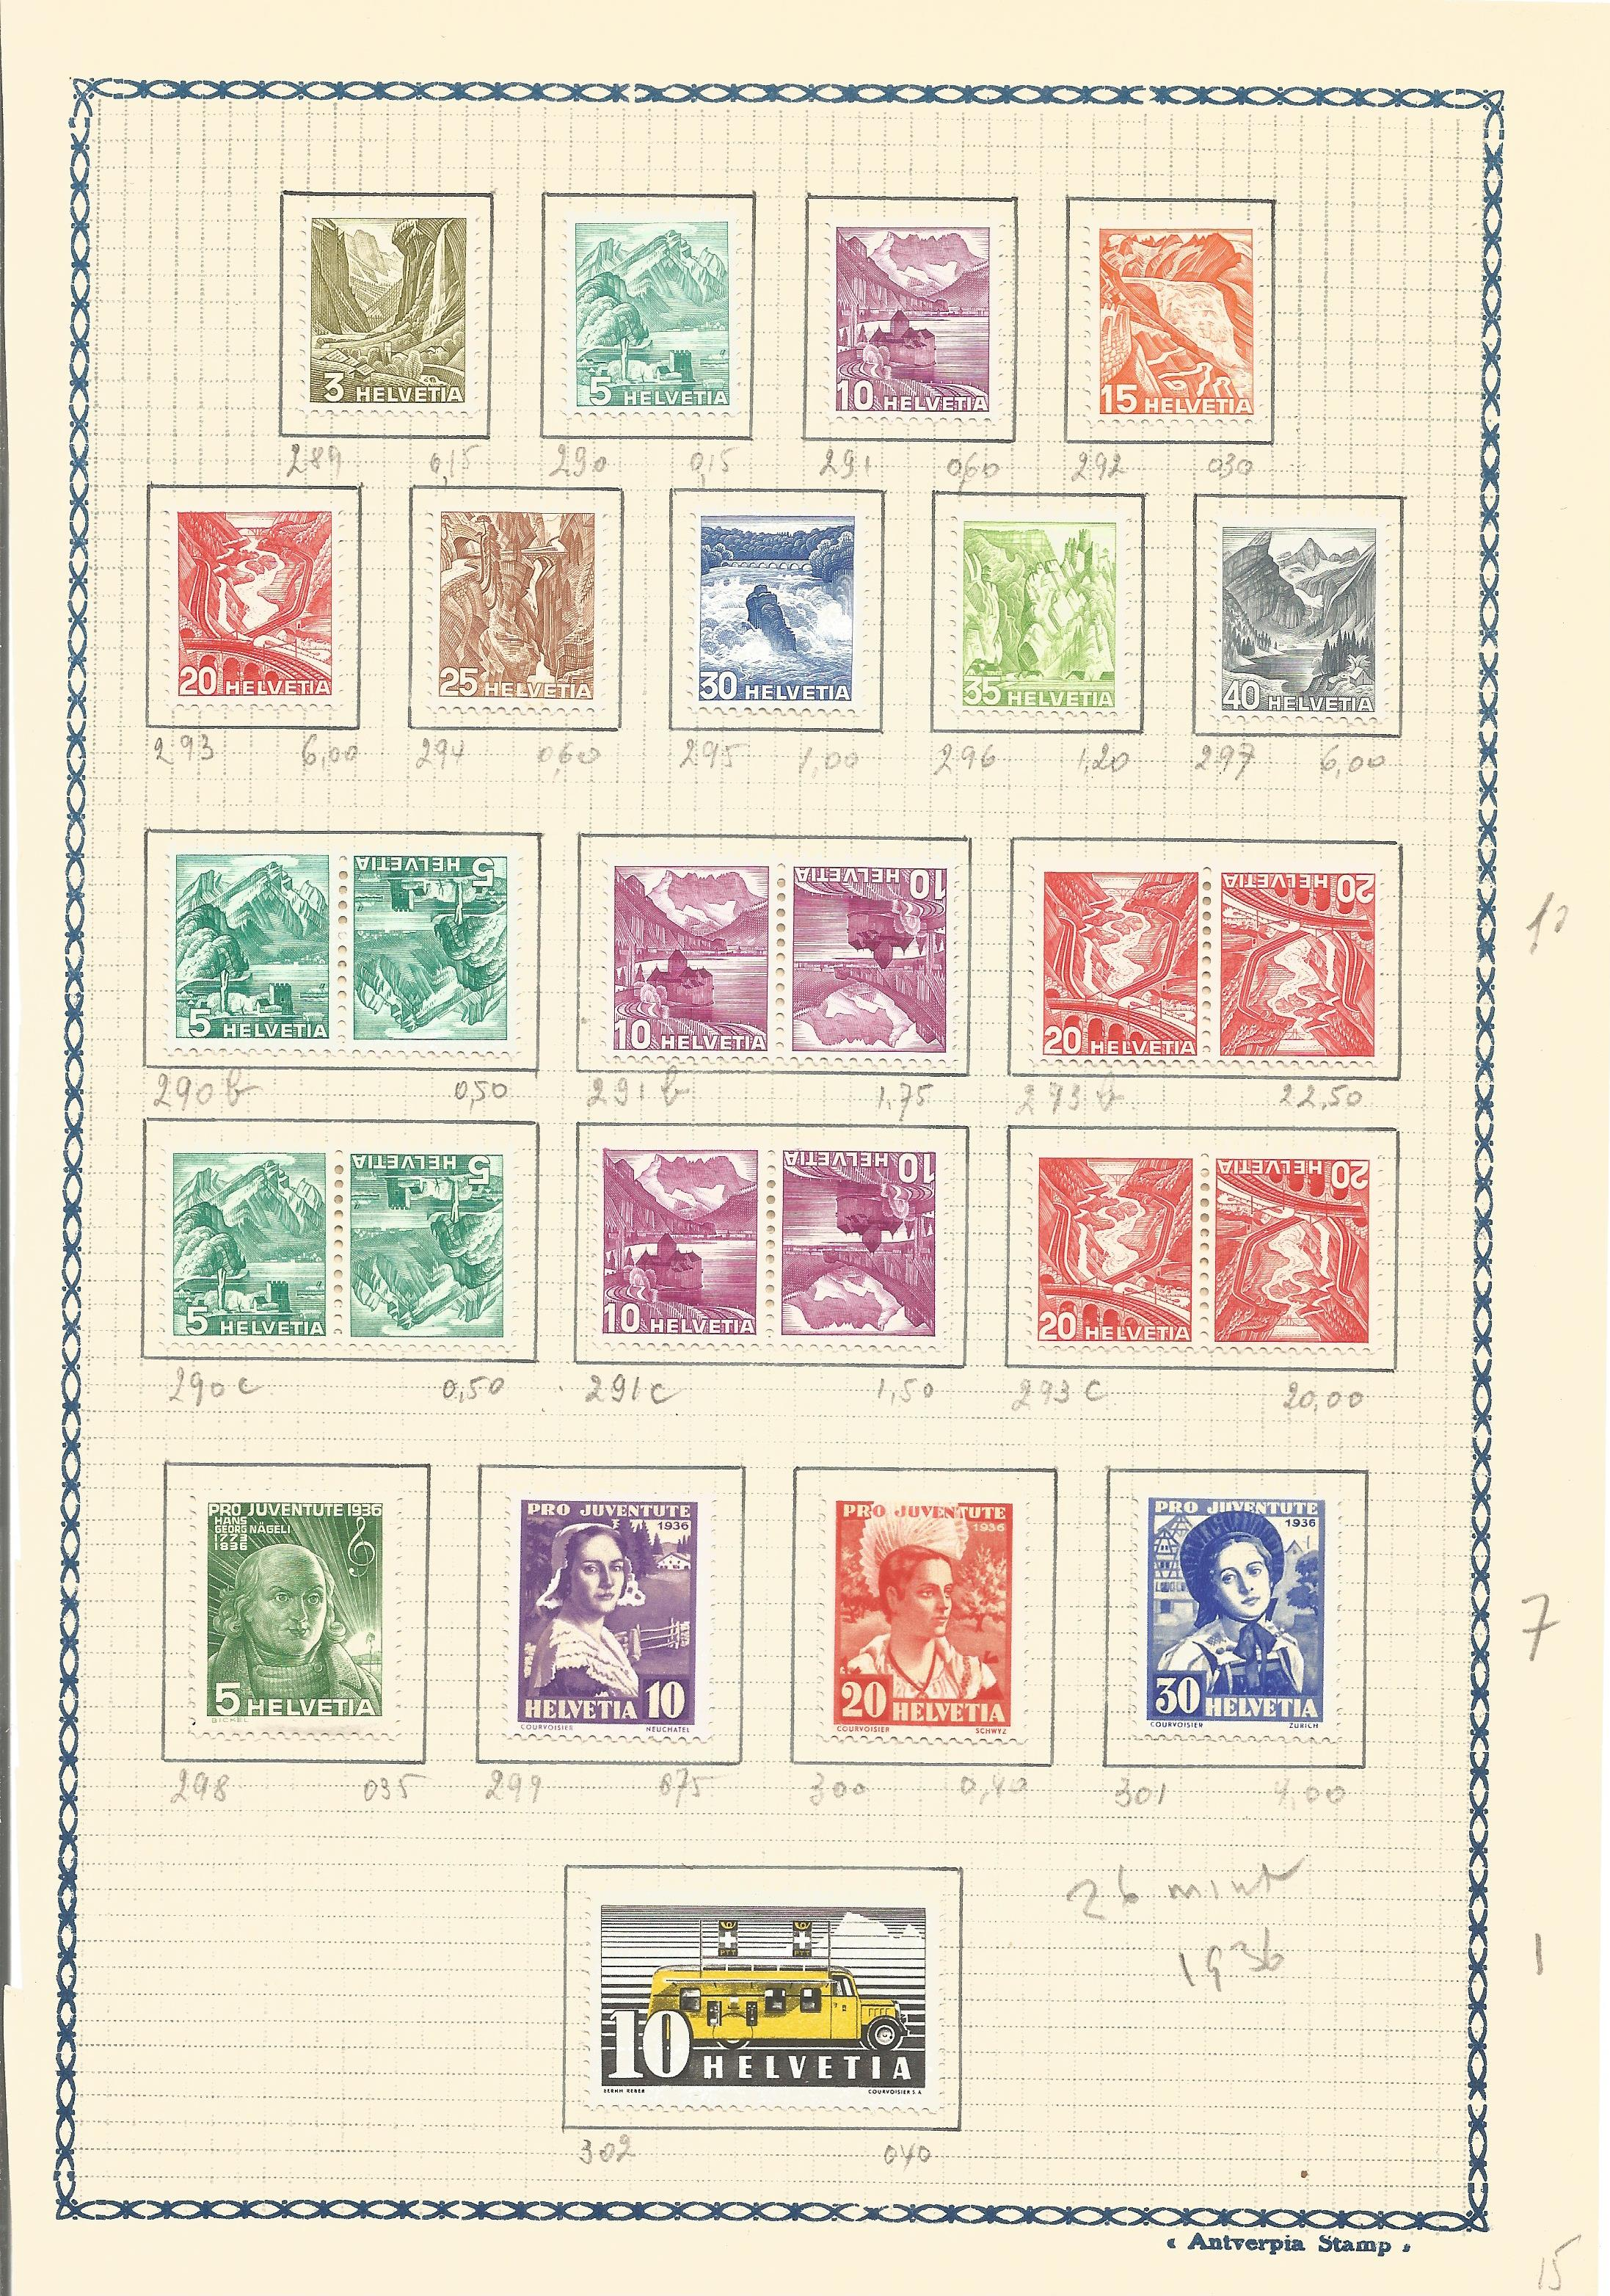 Swiss mint stamp collection. 26 stamps. 1936. Good condition. We combine postage on multiple winning